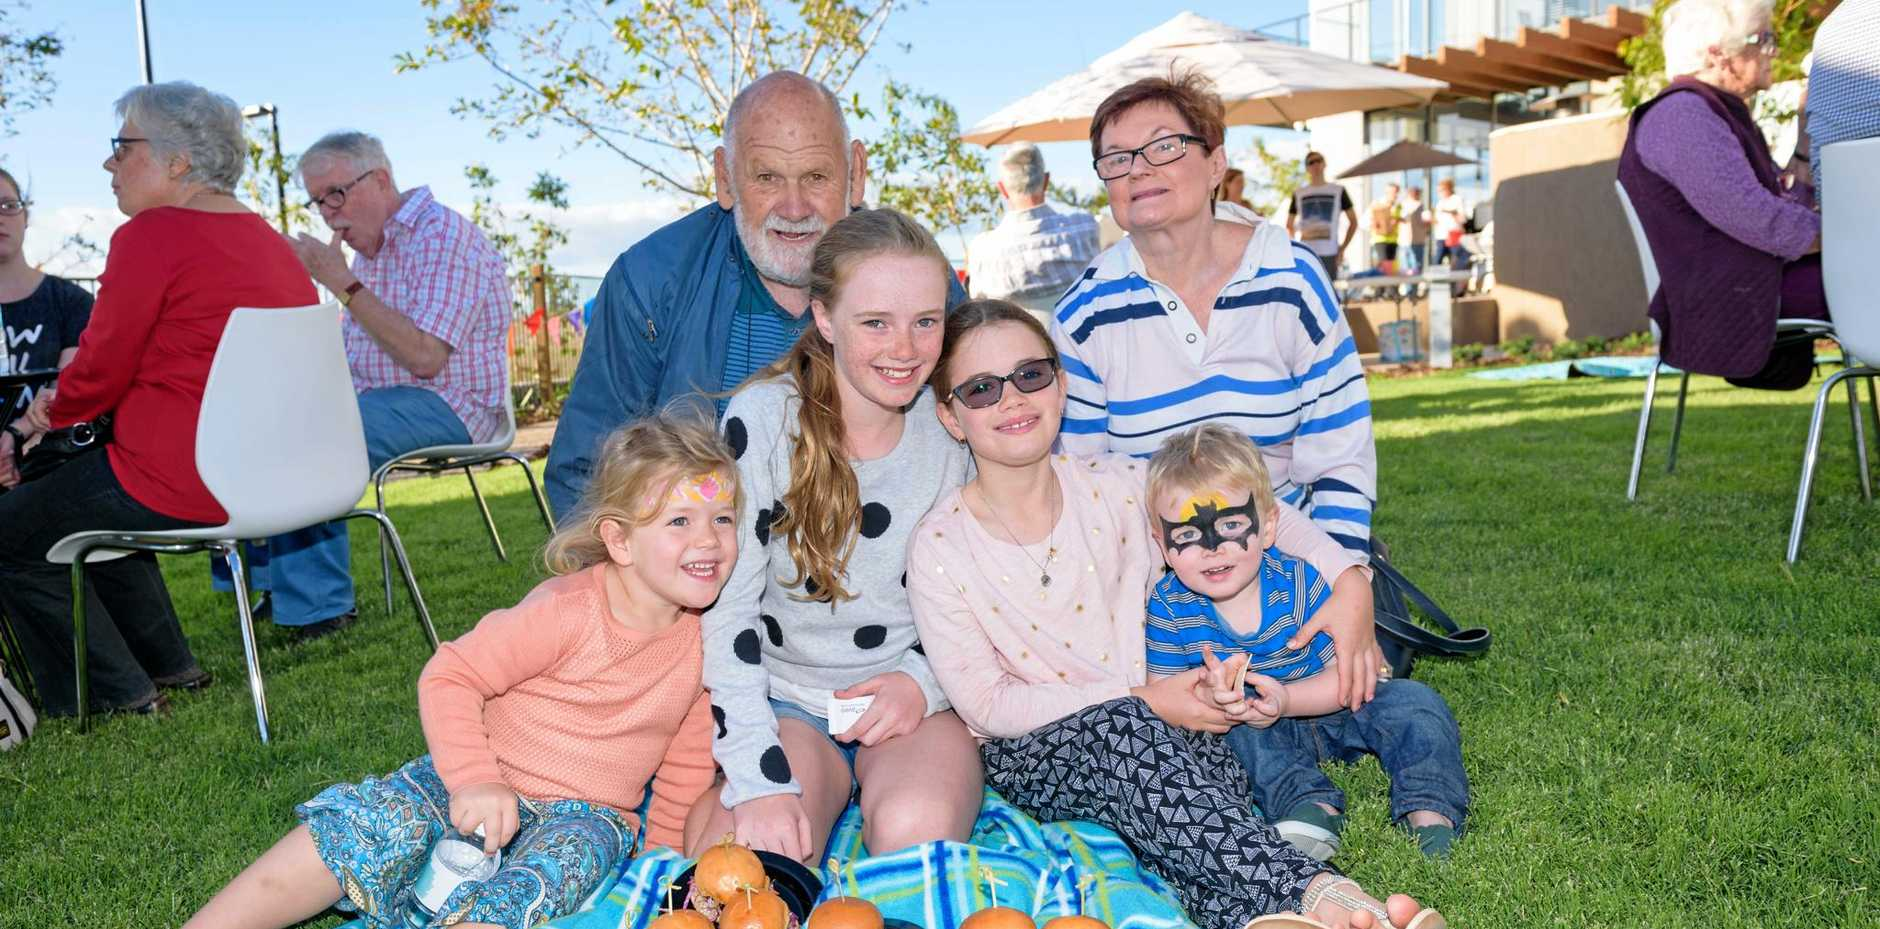 Barbara and Graham Mackay with grandchildren Emma, Chloe, Sarah and Angues at Aveo Springfield's Grand Opening event.